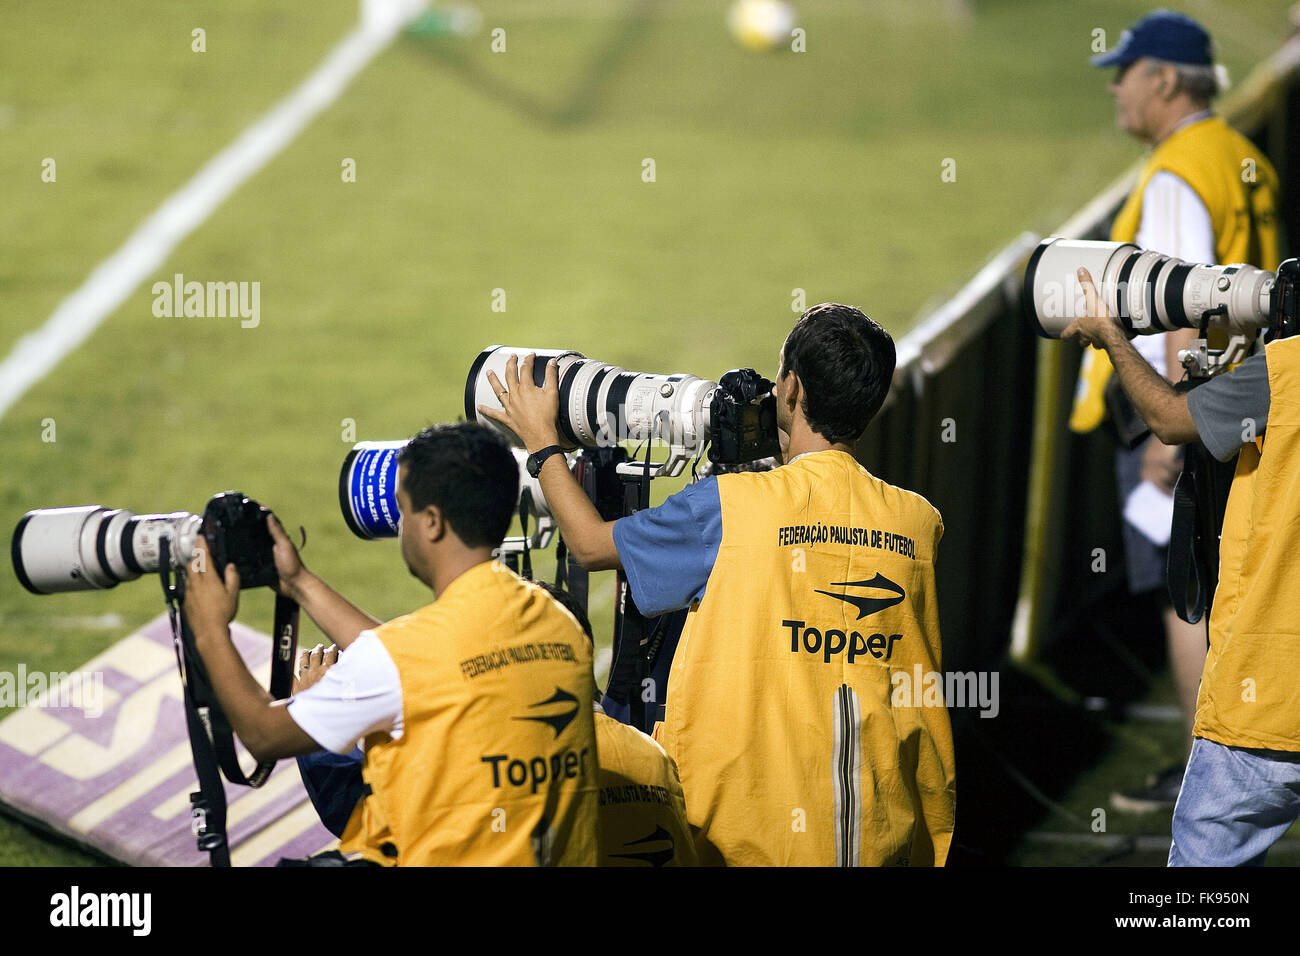 Photographers working during soccer match at Estadio do Pacaembu - Stock Image